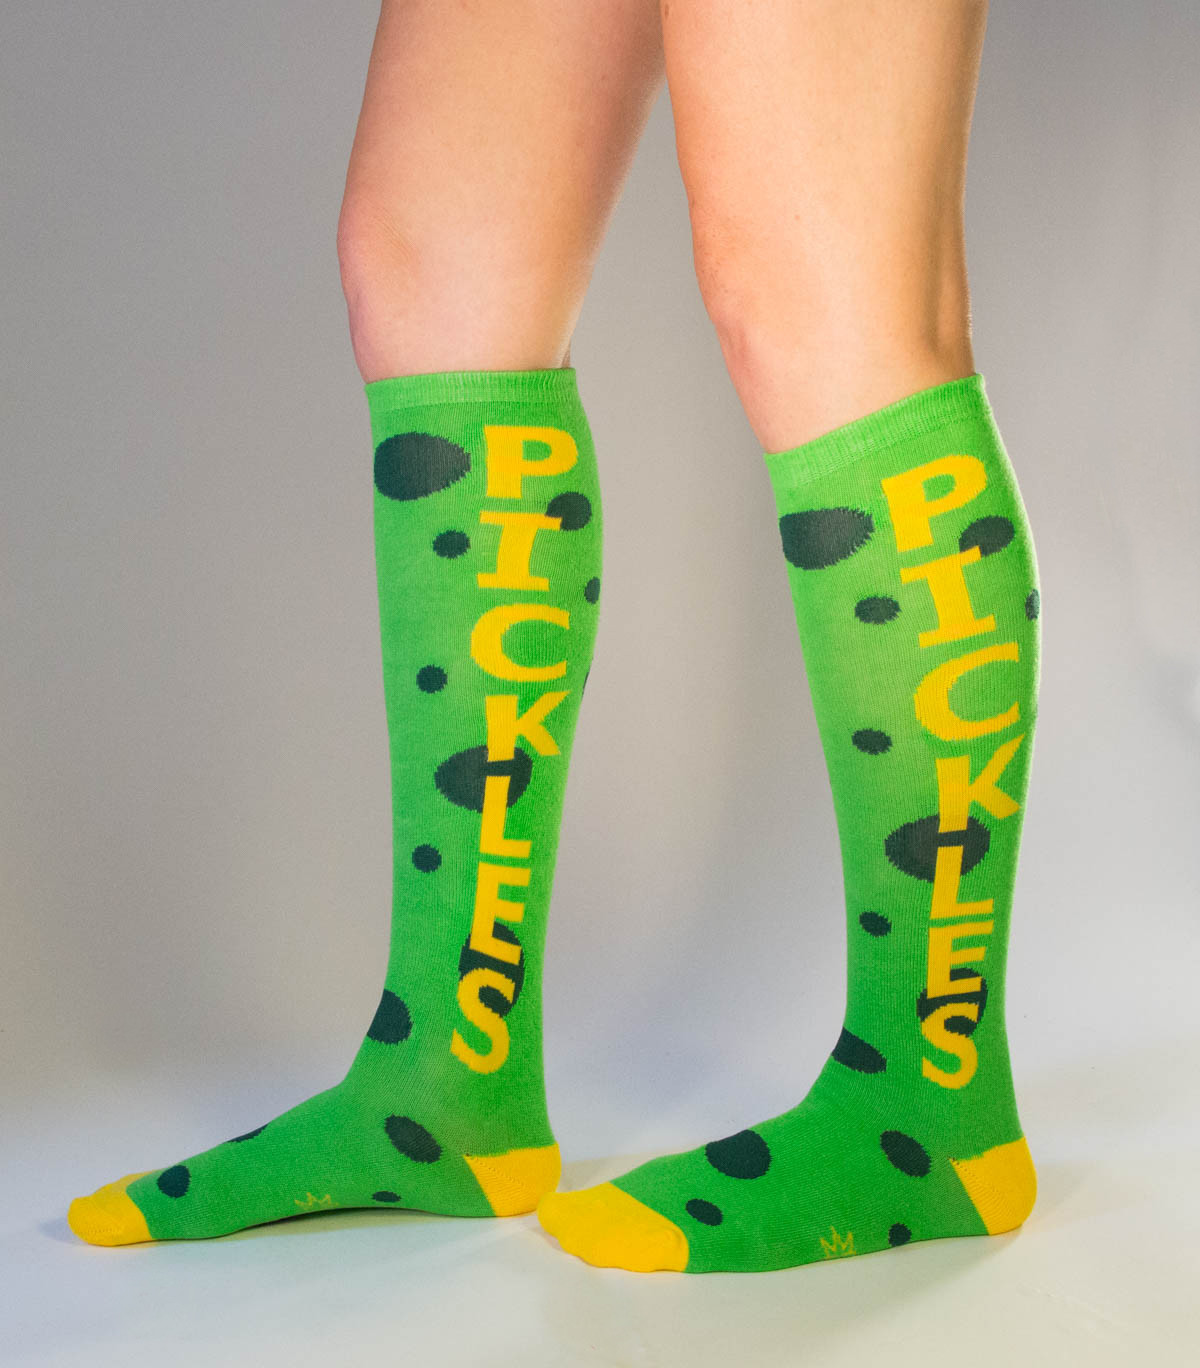 pickles socks 9 95 funslurp com unique gifts and fun products